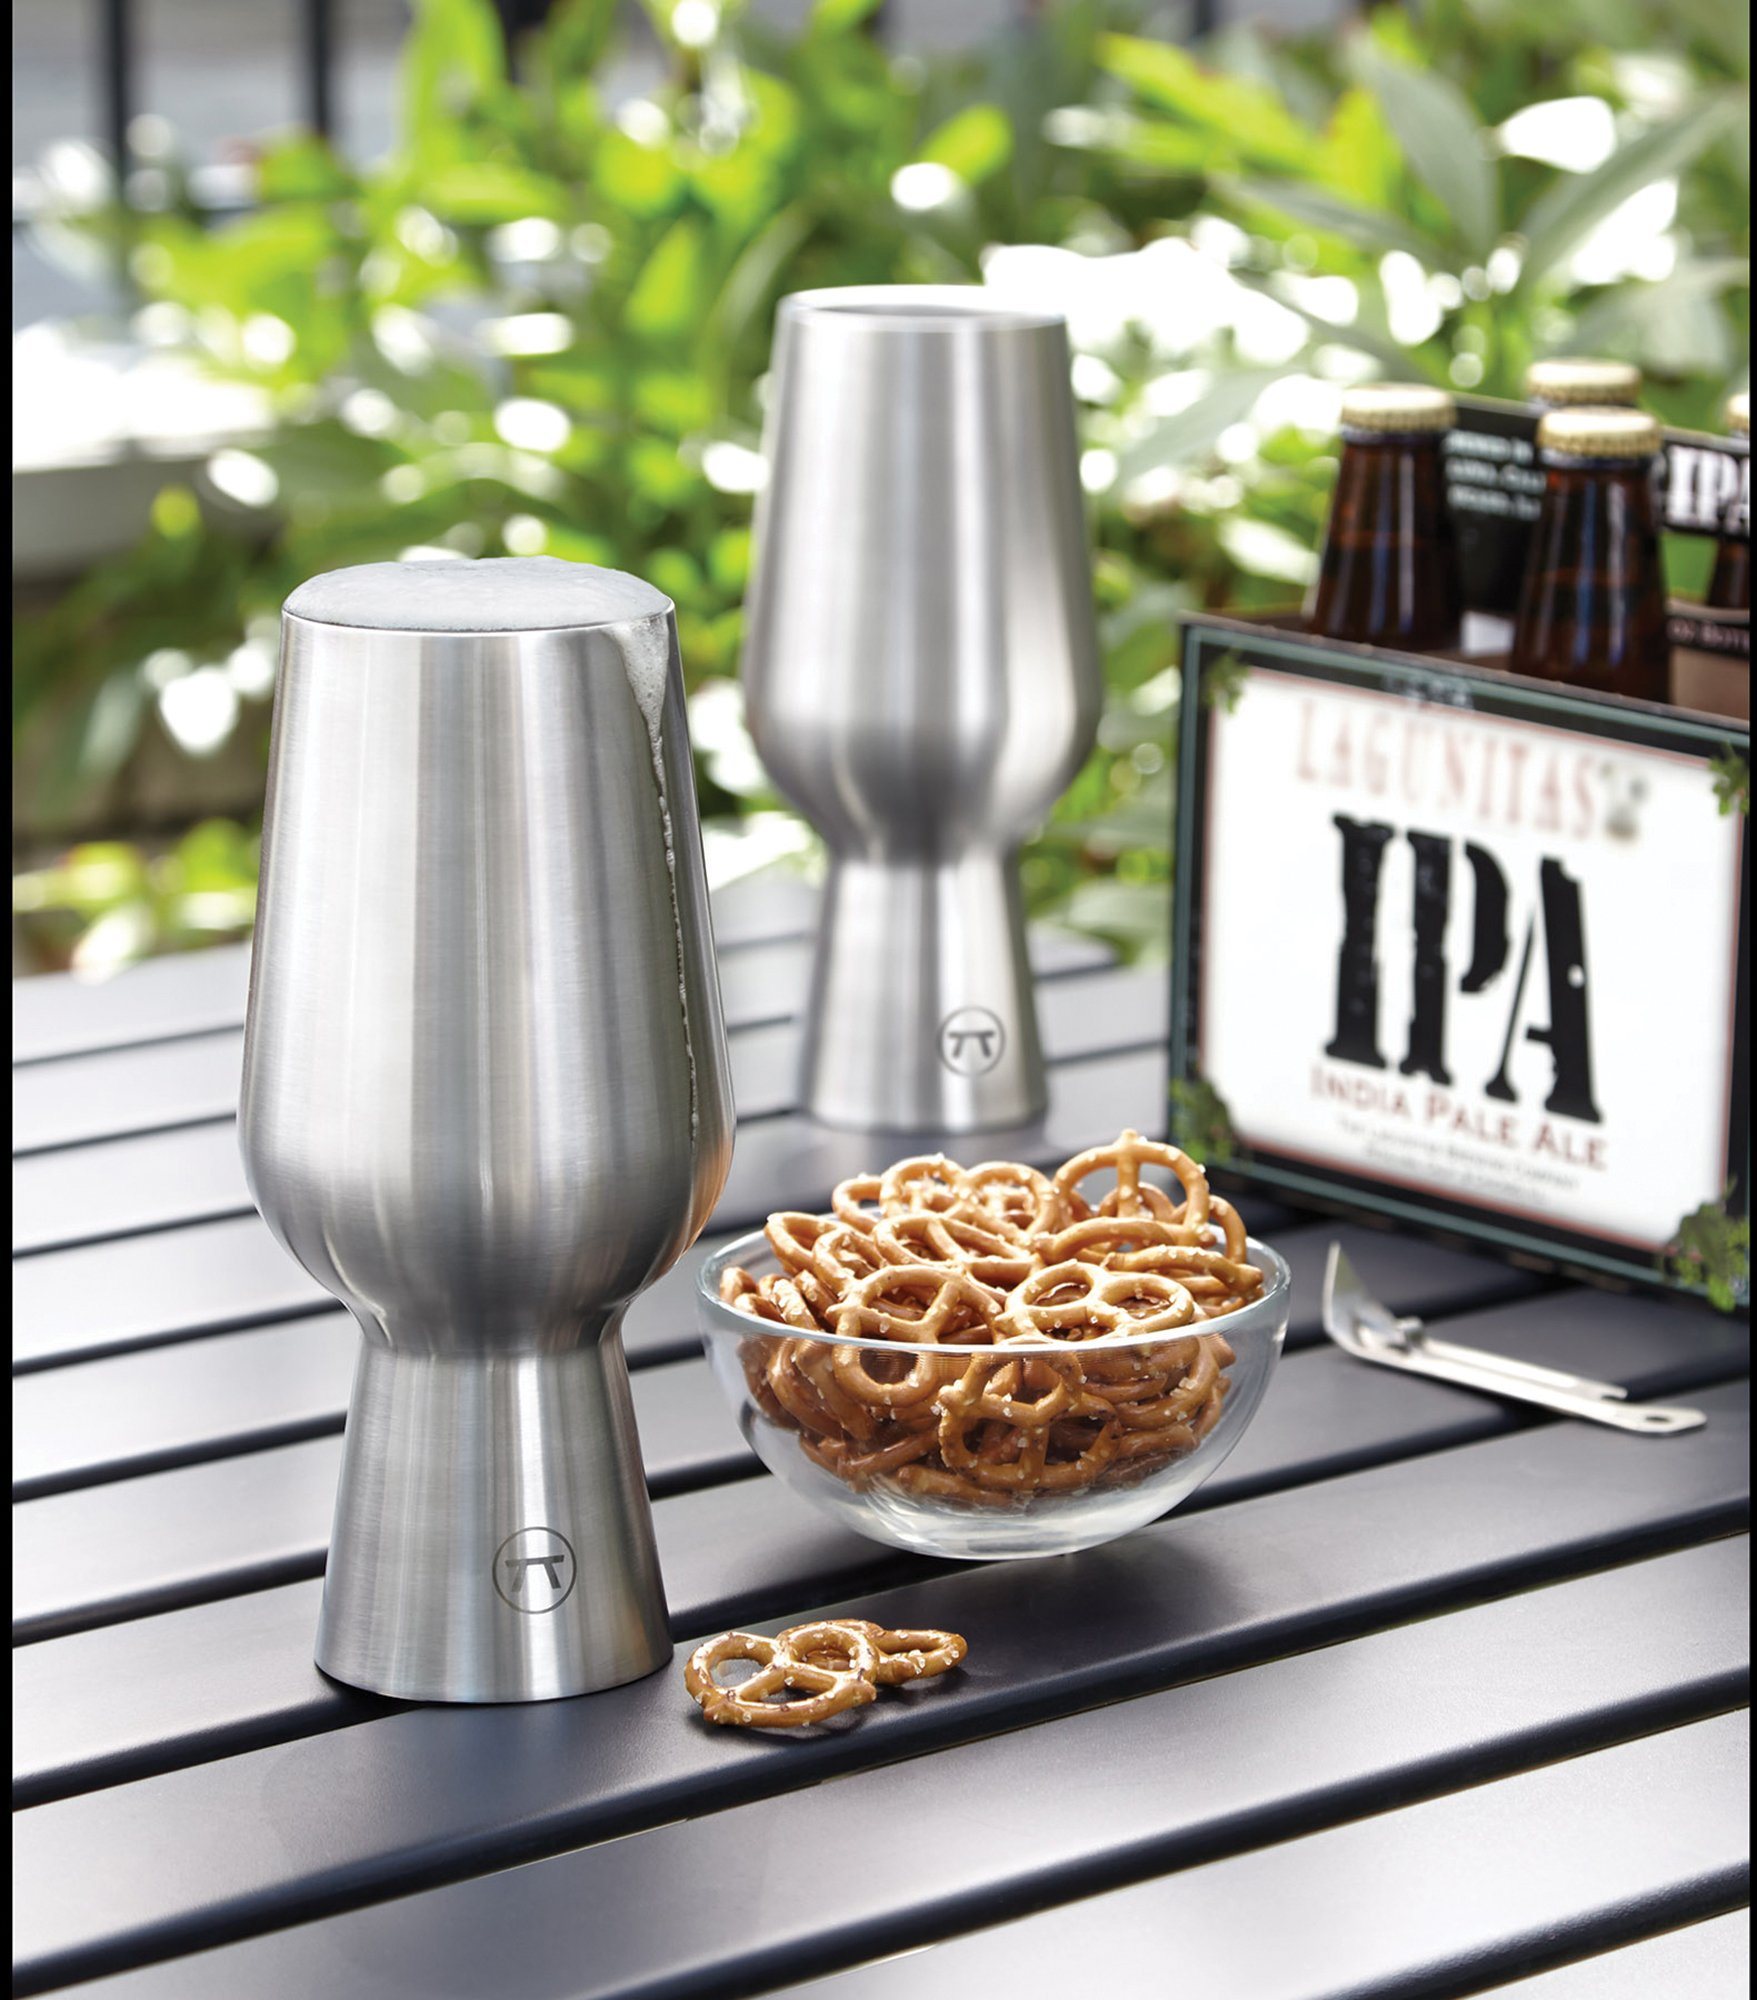 Outset 76451 Beer Chalice Double Wall Ipa Glass, Set of 2, Stainless Steel by Outset (Image #2)